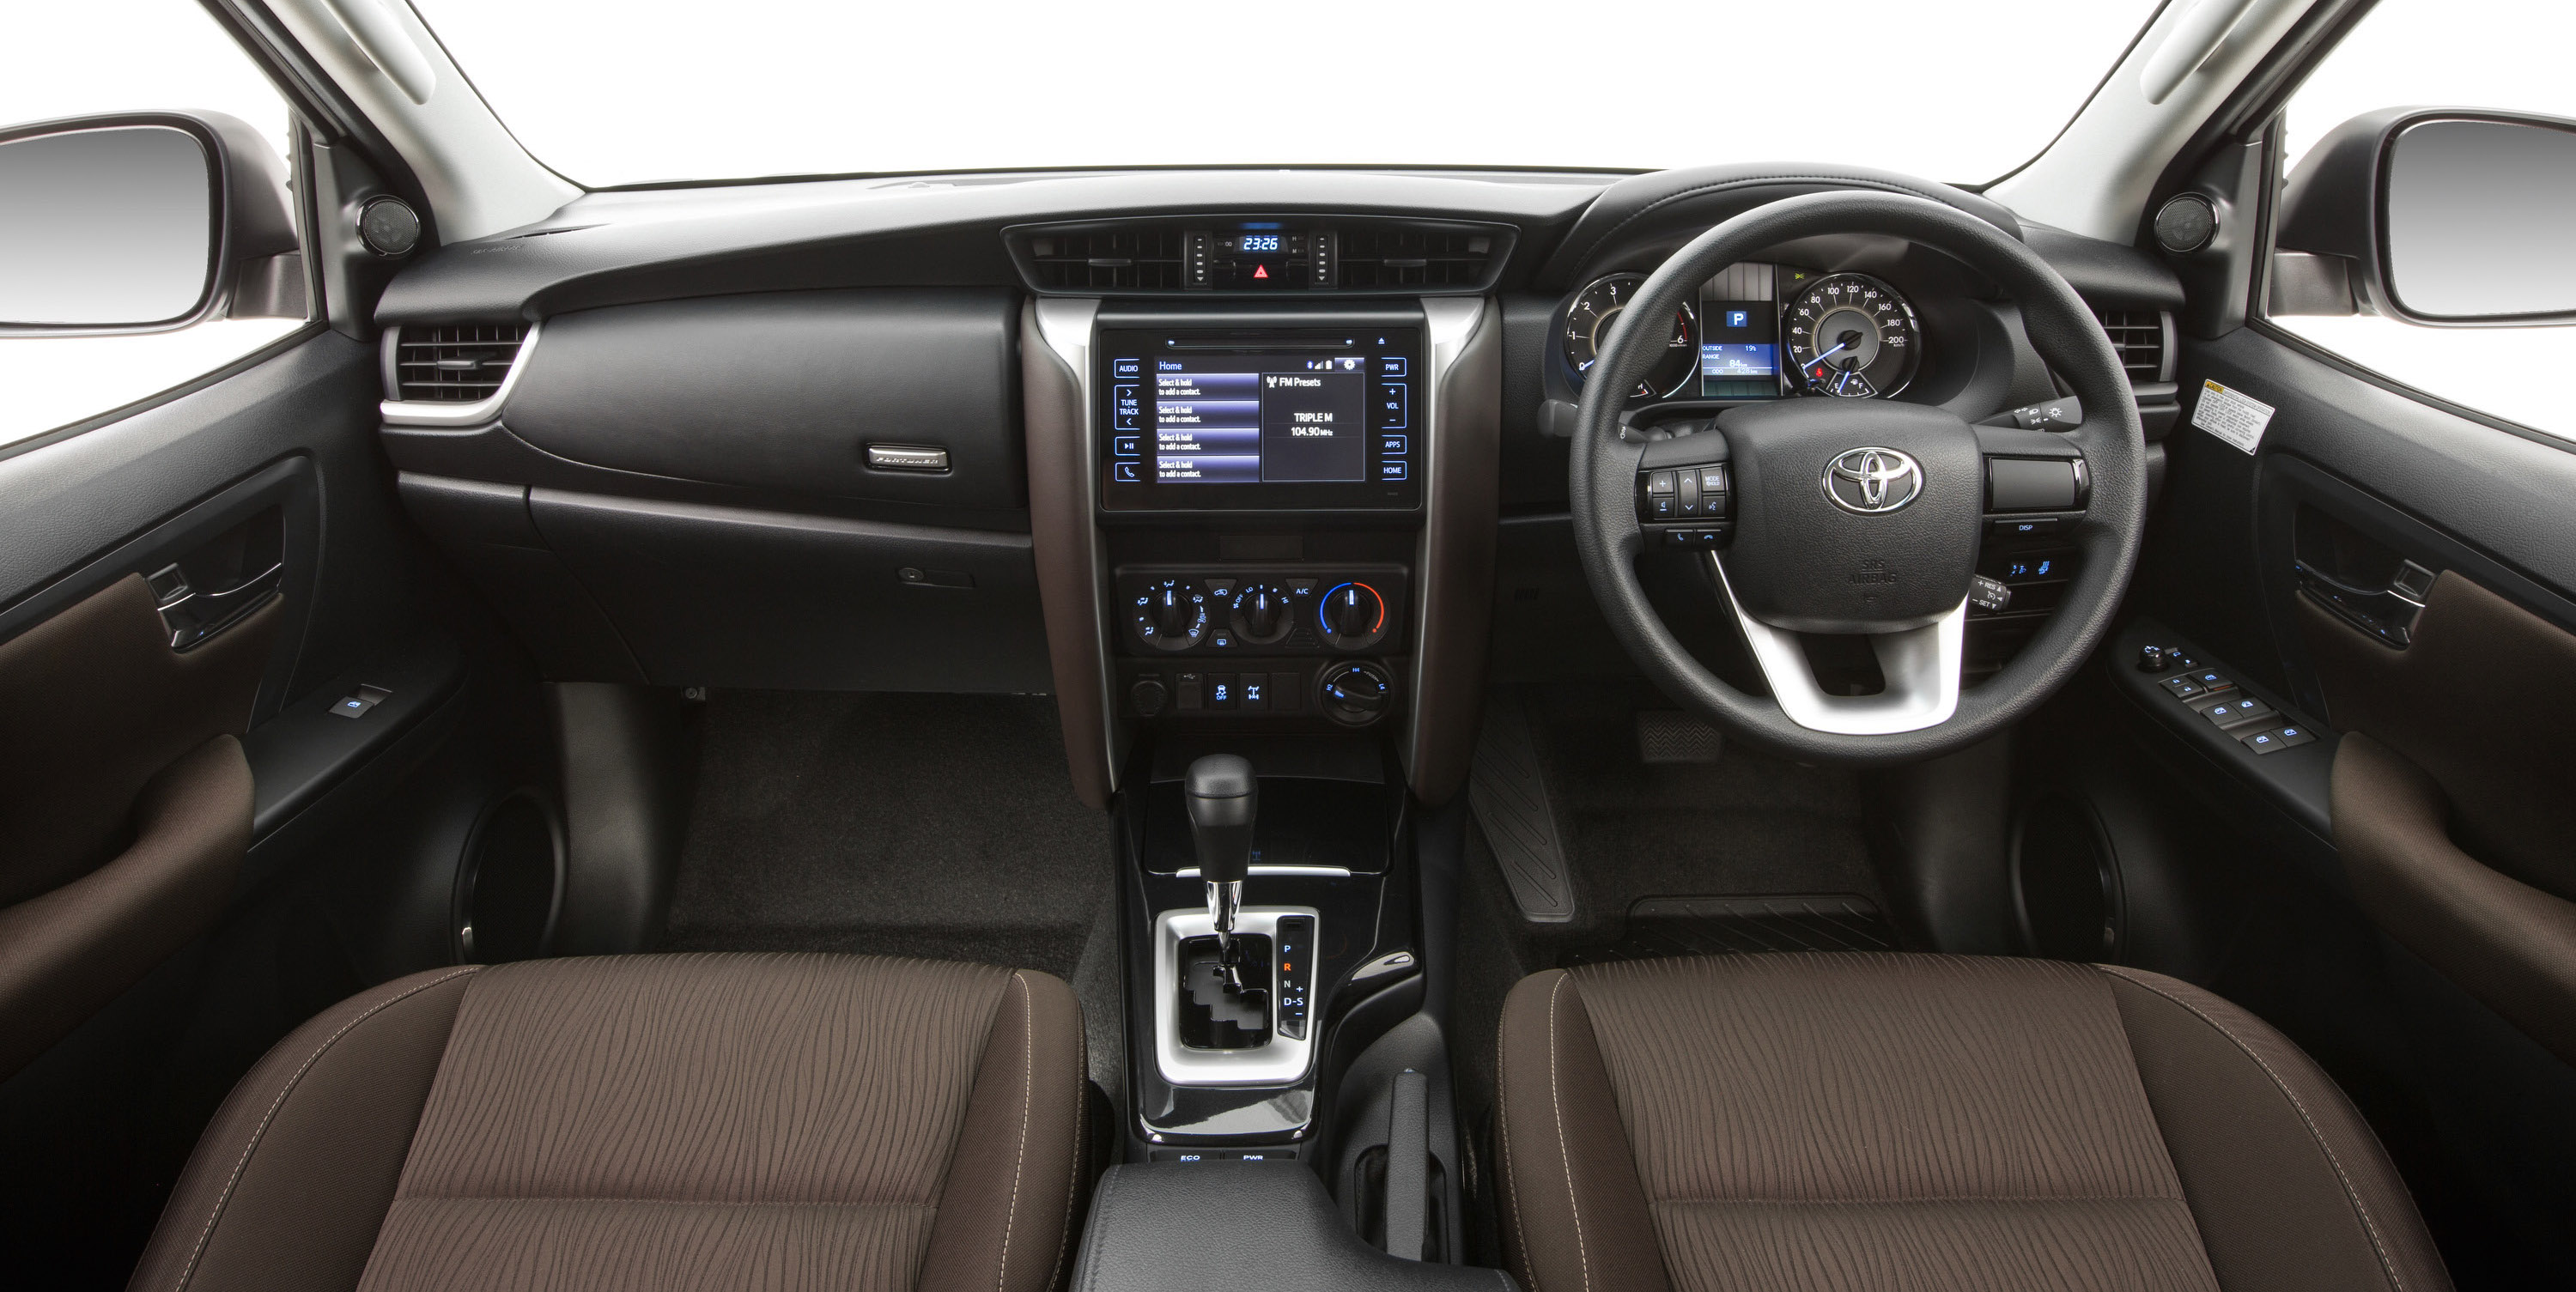 2014 Toyota Corolla For Sale >> 2016 Toyota Fortuner interior revealed - photos | CarAdvice